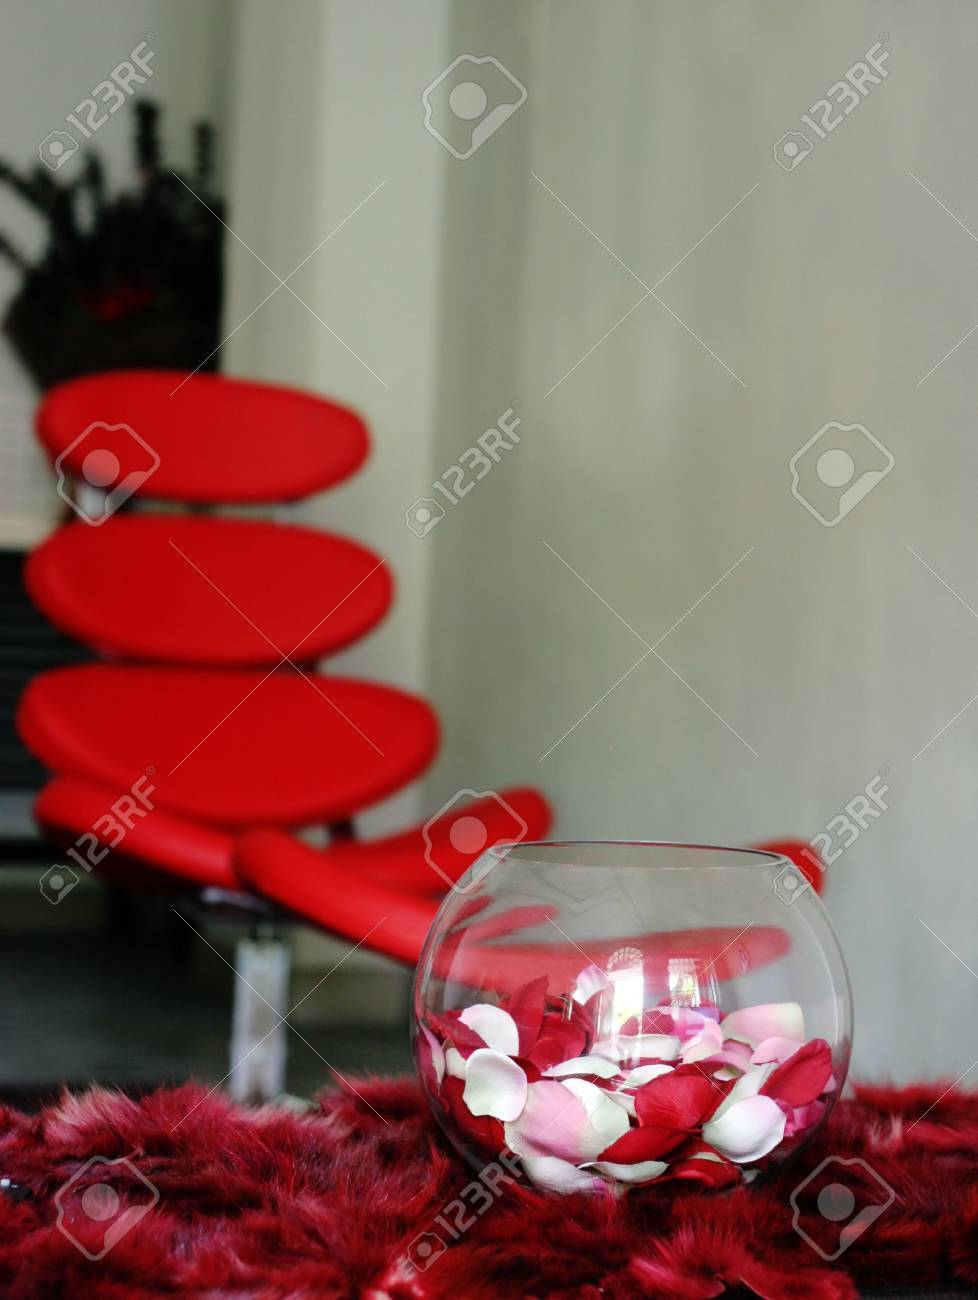 Vase of Roses on Table Vase of Rose Petals on a Table